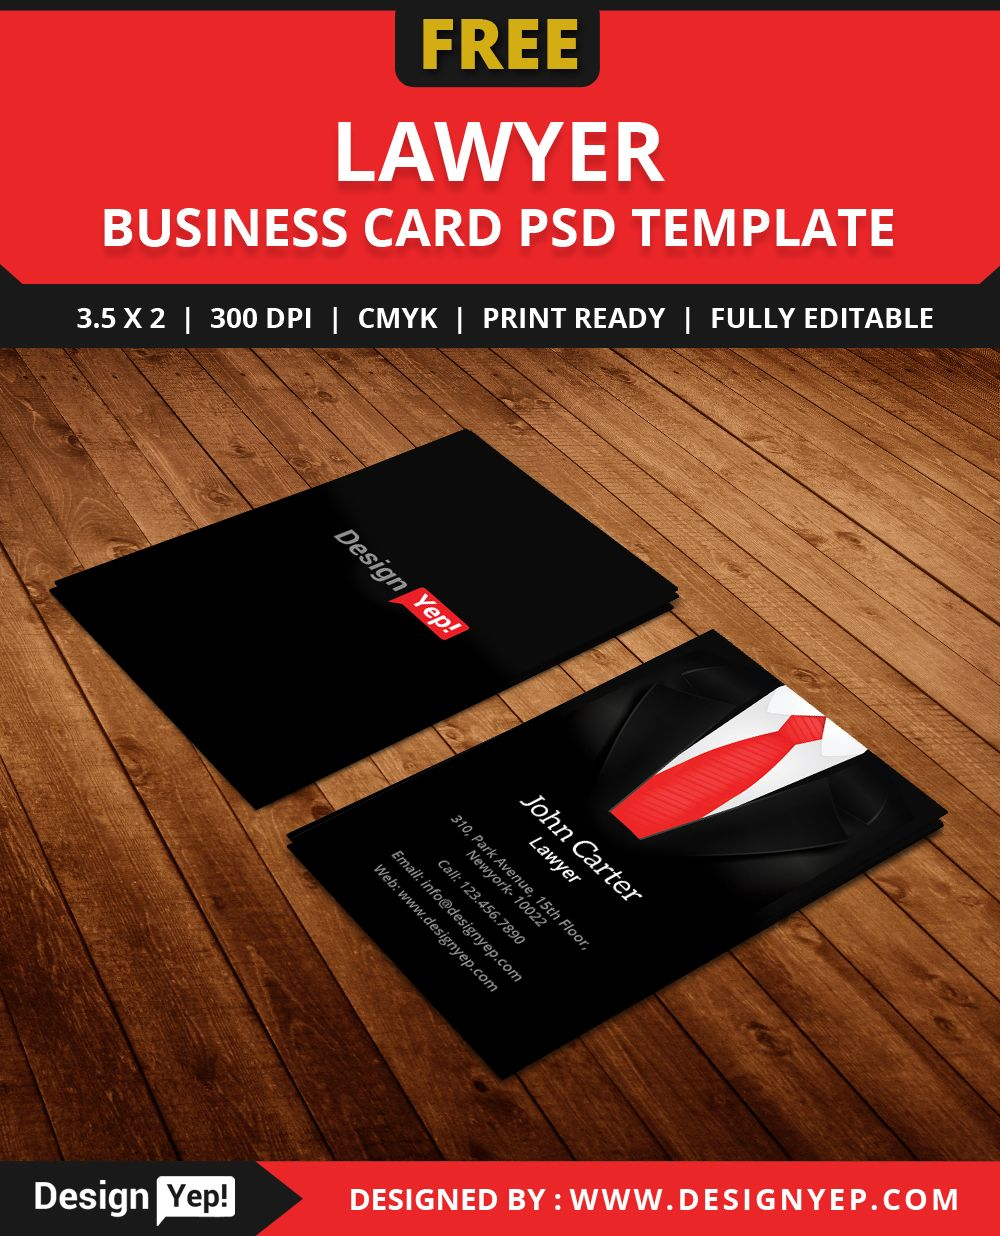 Free lawyer business card template psd free business card free lawyer business card template psd reheart Choice Image